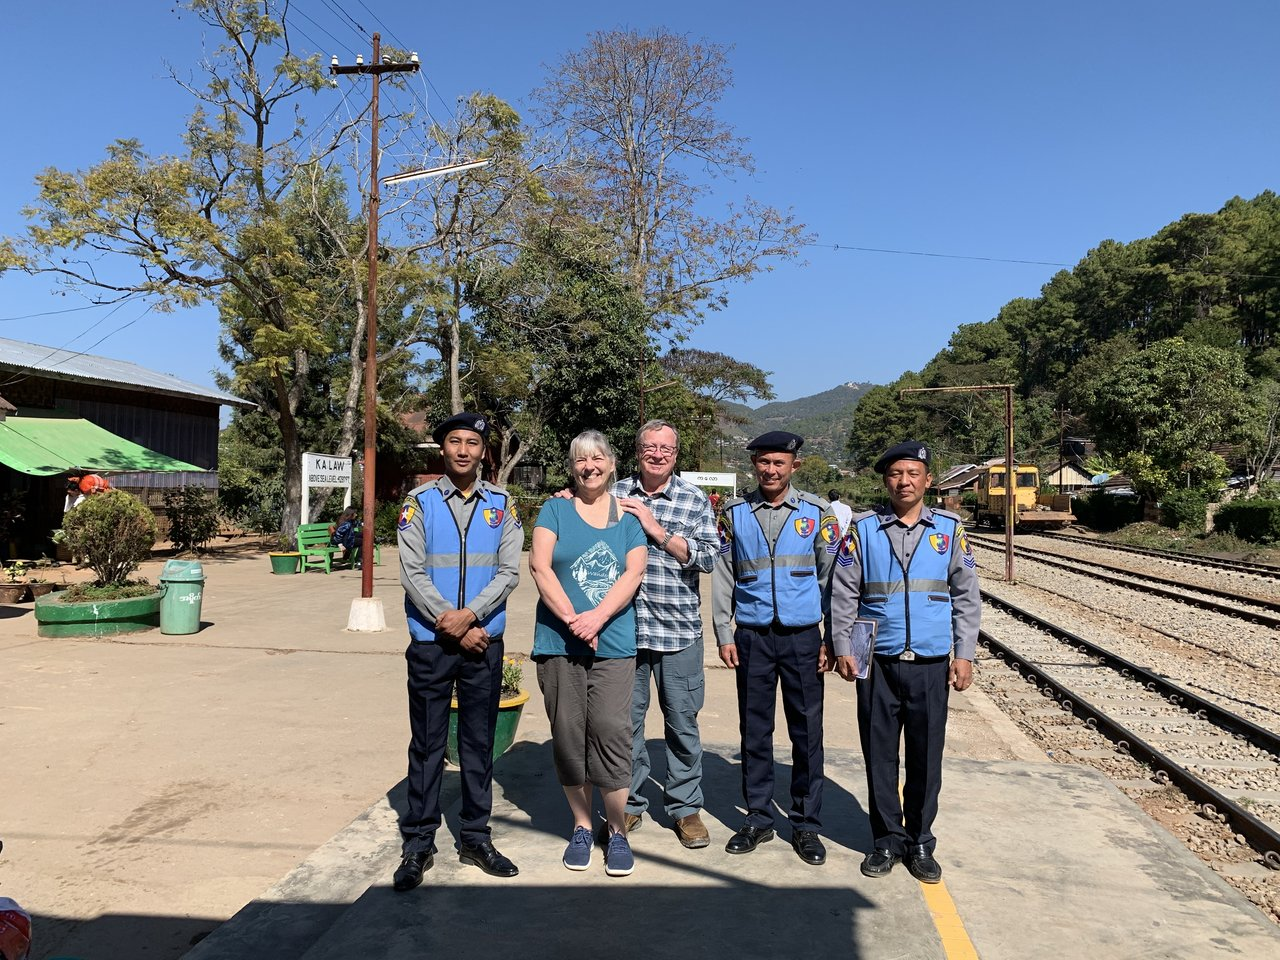 Friendly local train staff | Photo taken by Bonnie S